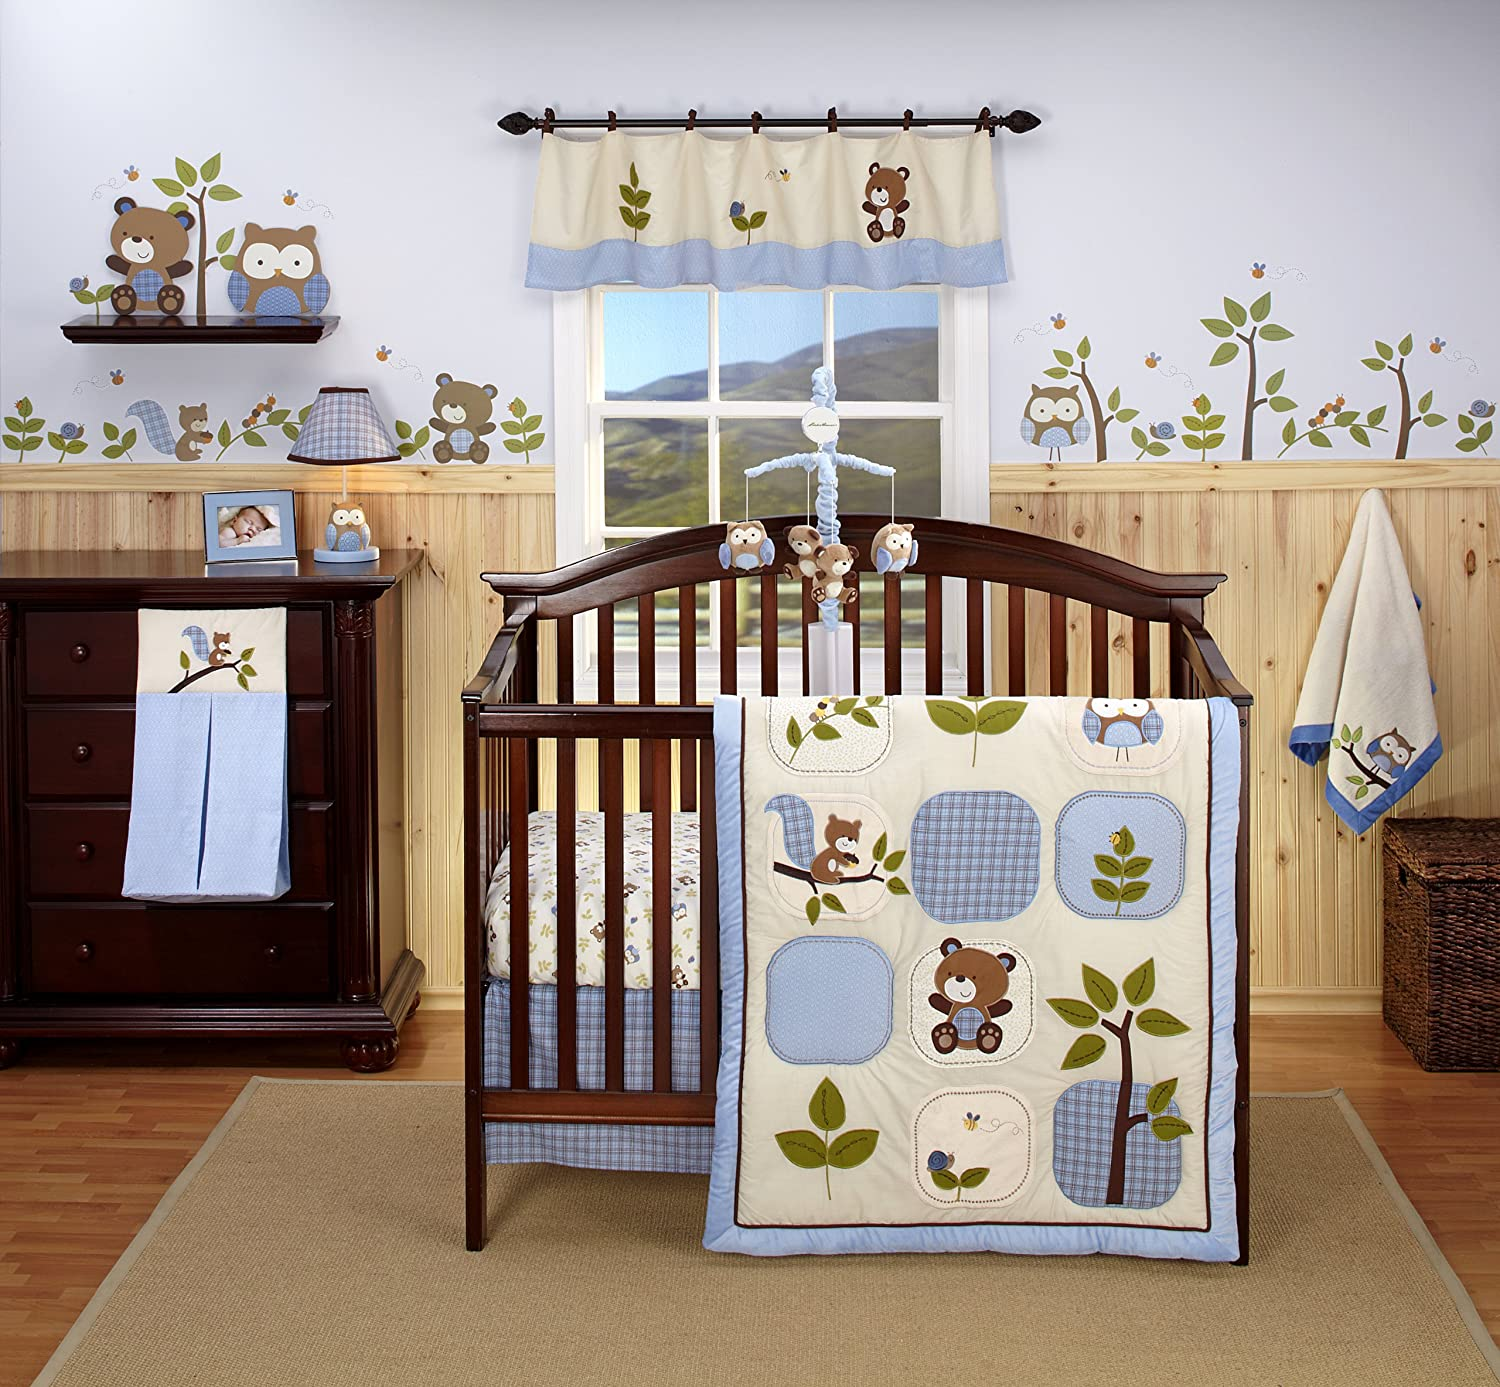 designs baby popular crib remodel with bedding about inspiration magnificent dinosaurs sets most bed to boy home